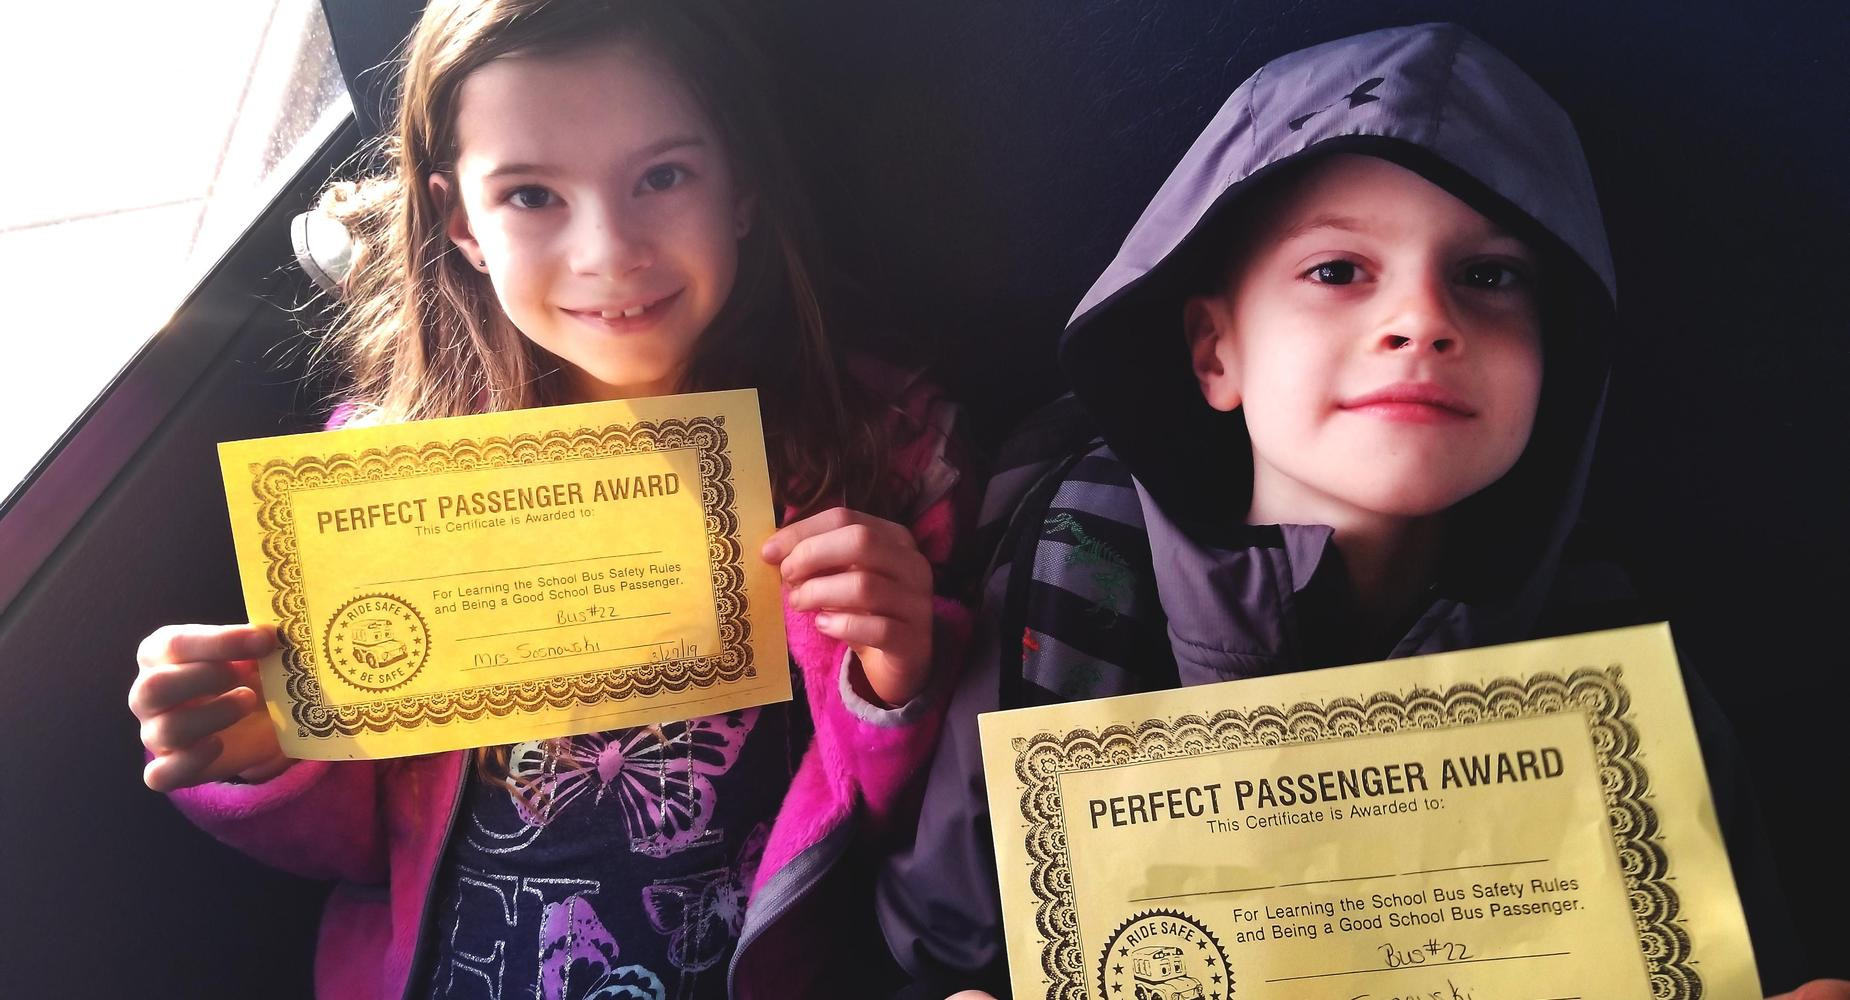 Two students sitting on bus holding award certificate